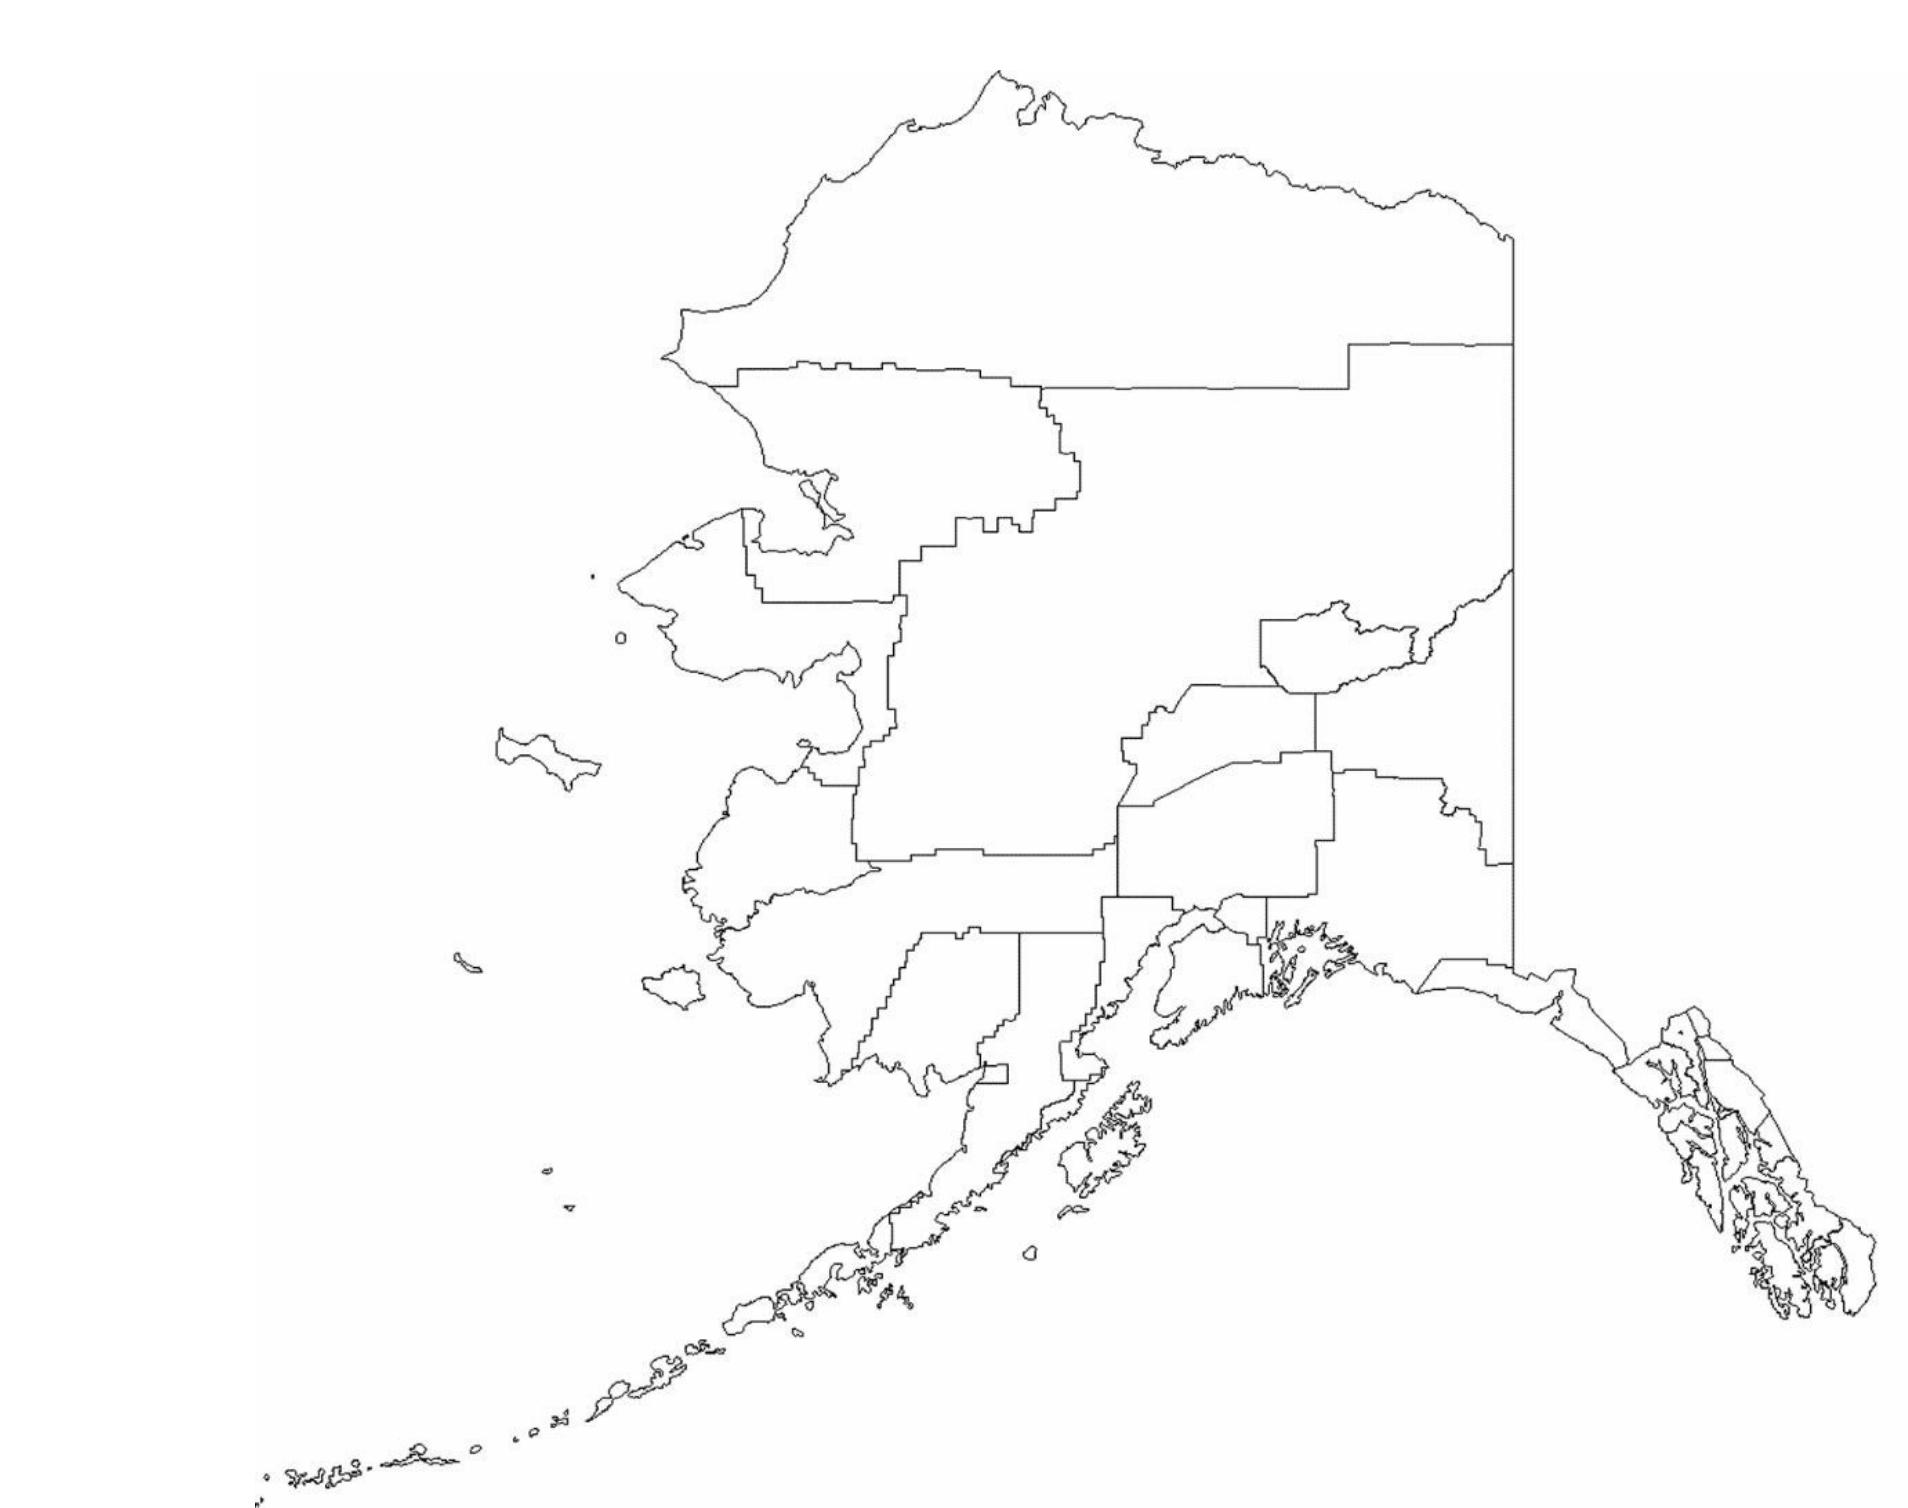 Model Alaska Borough Map Swimnovacom - Alaska county map